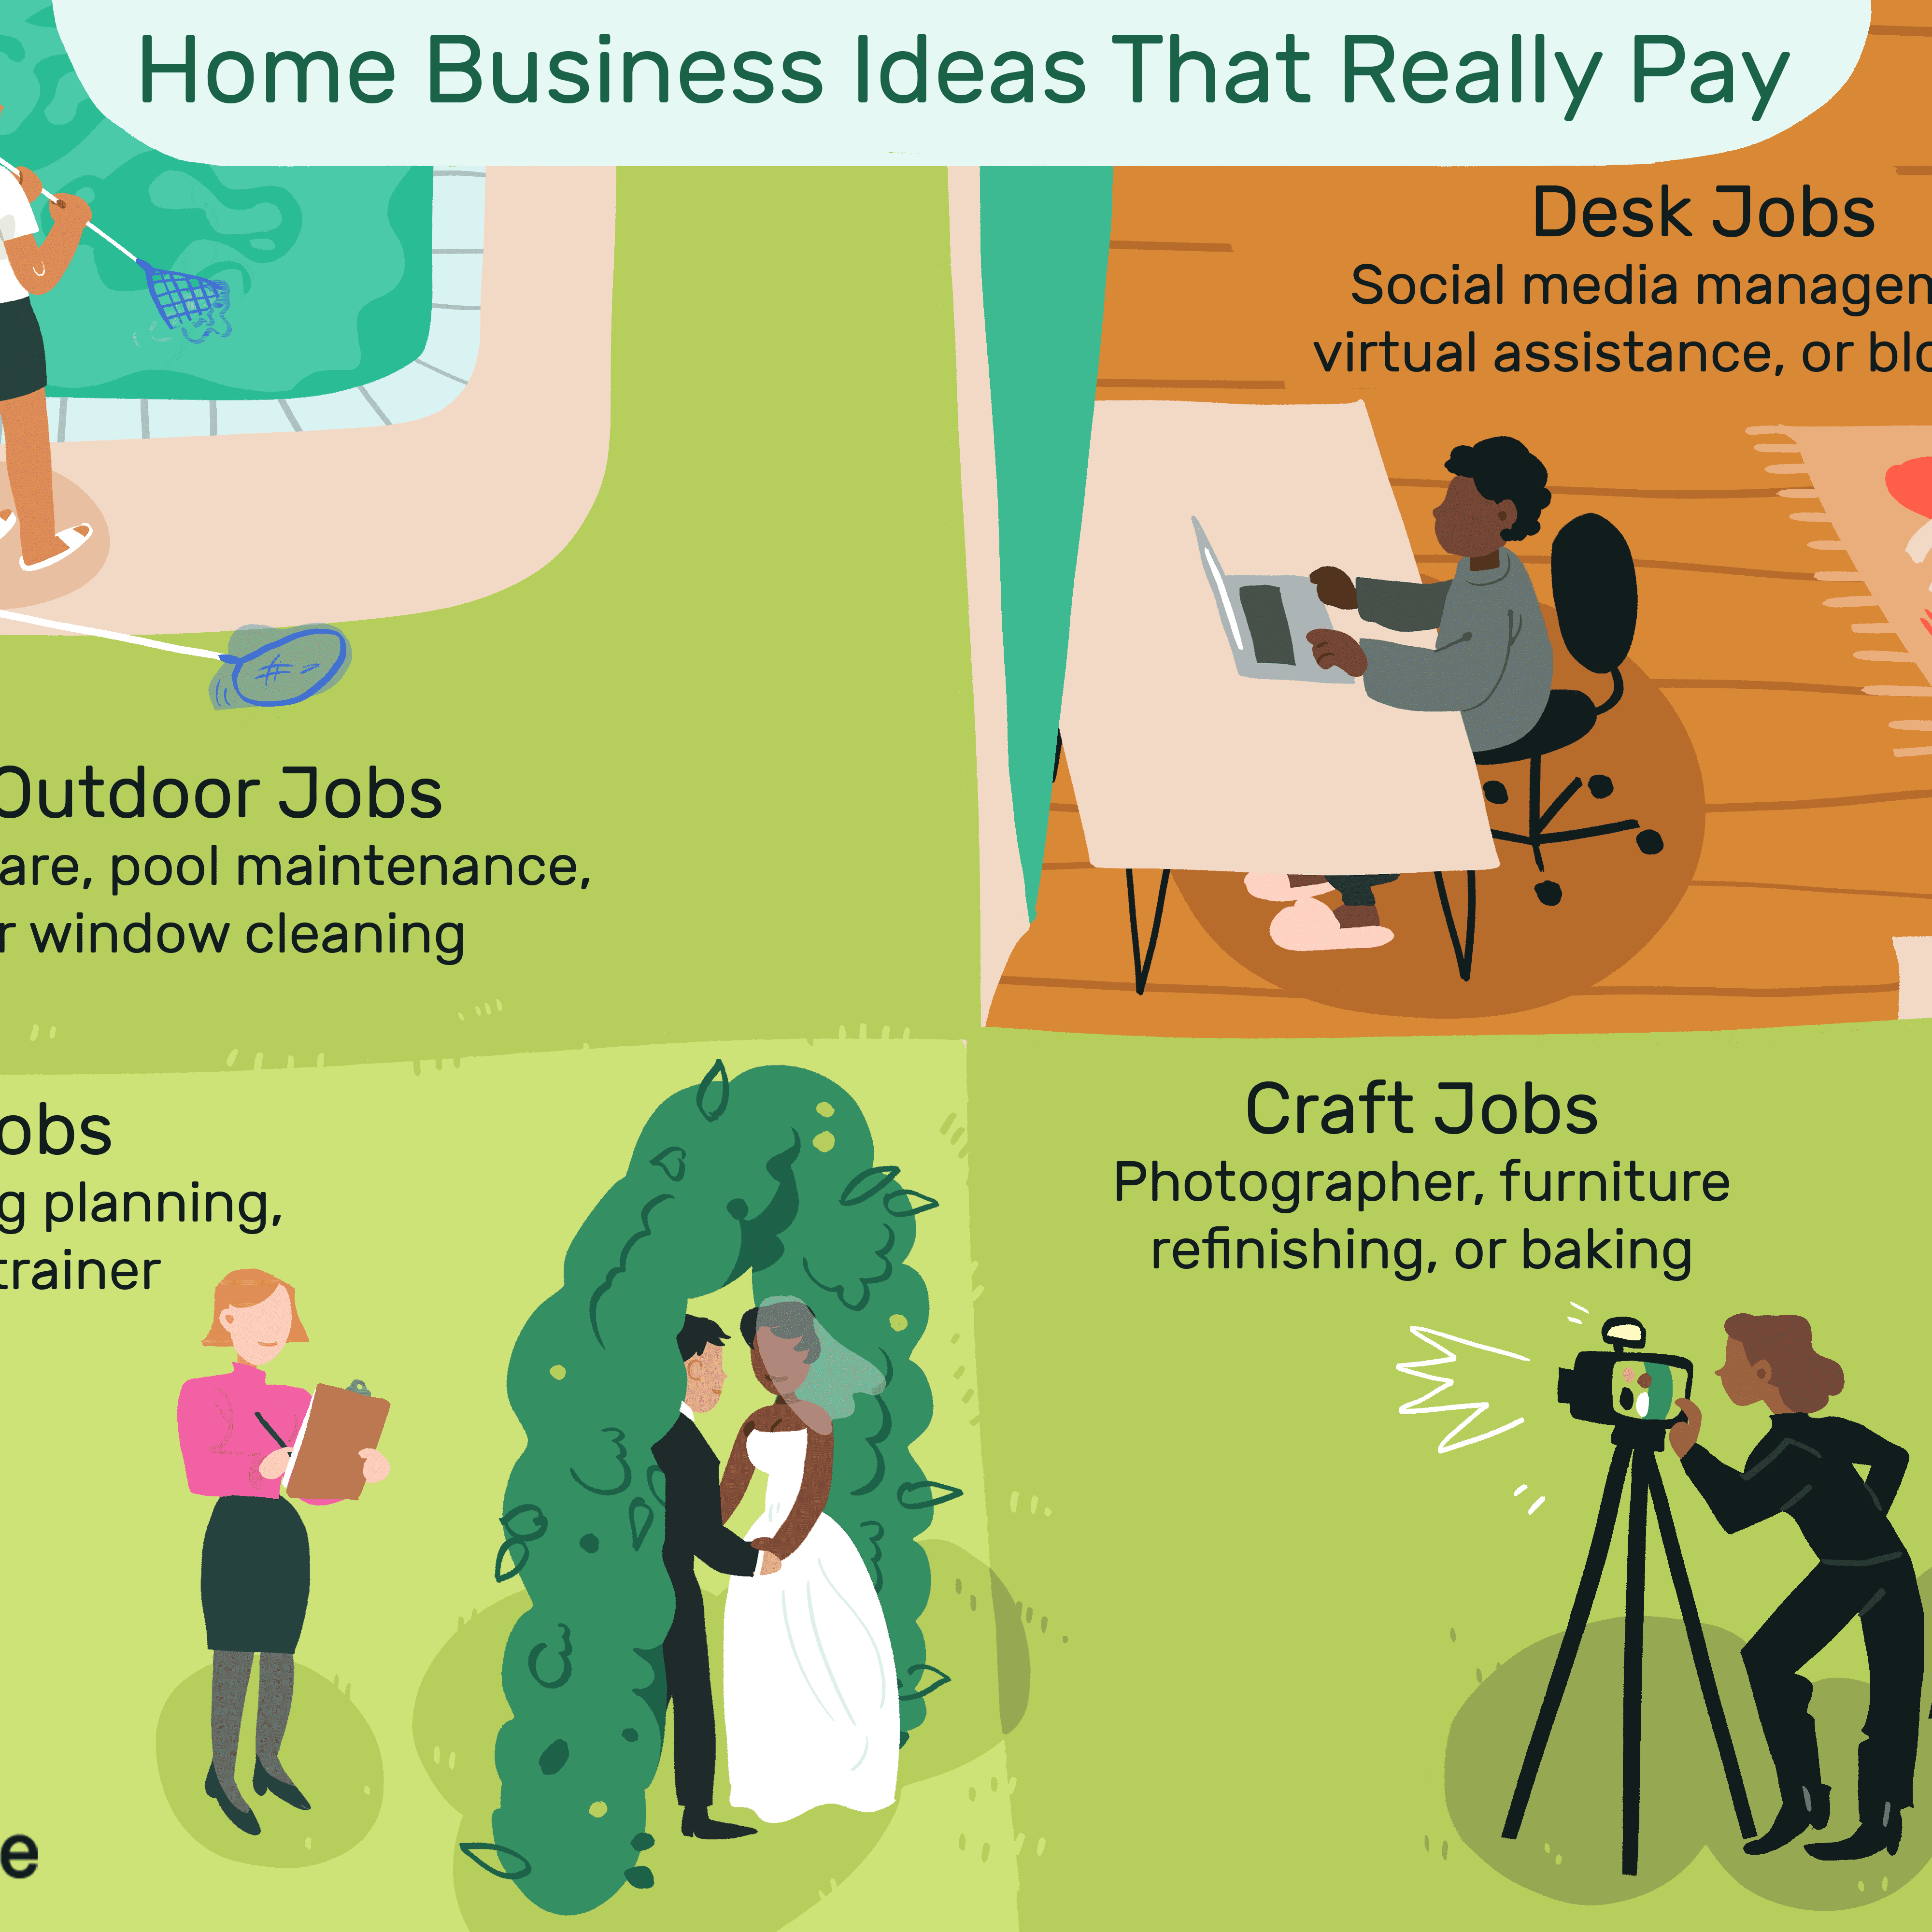 Home Business Ideas That Really Pay